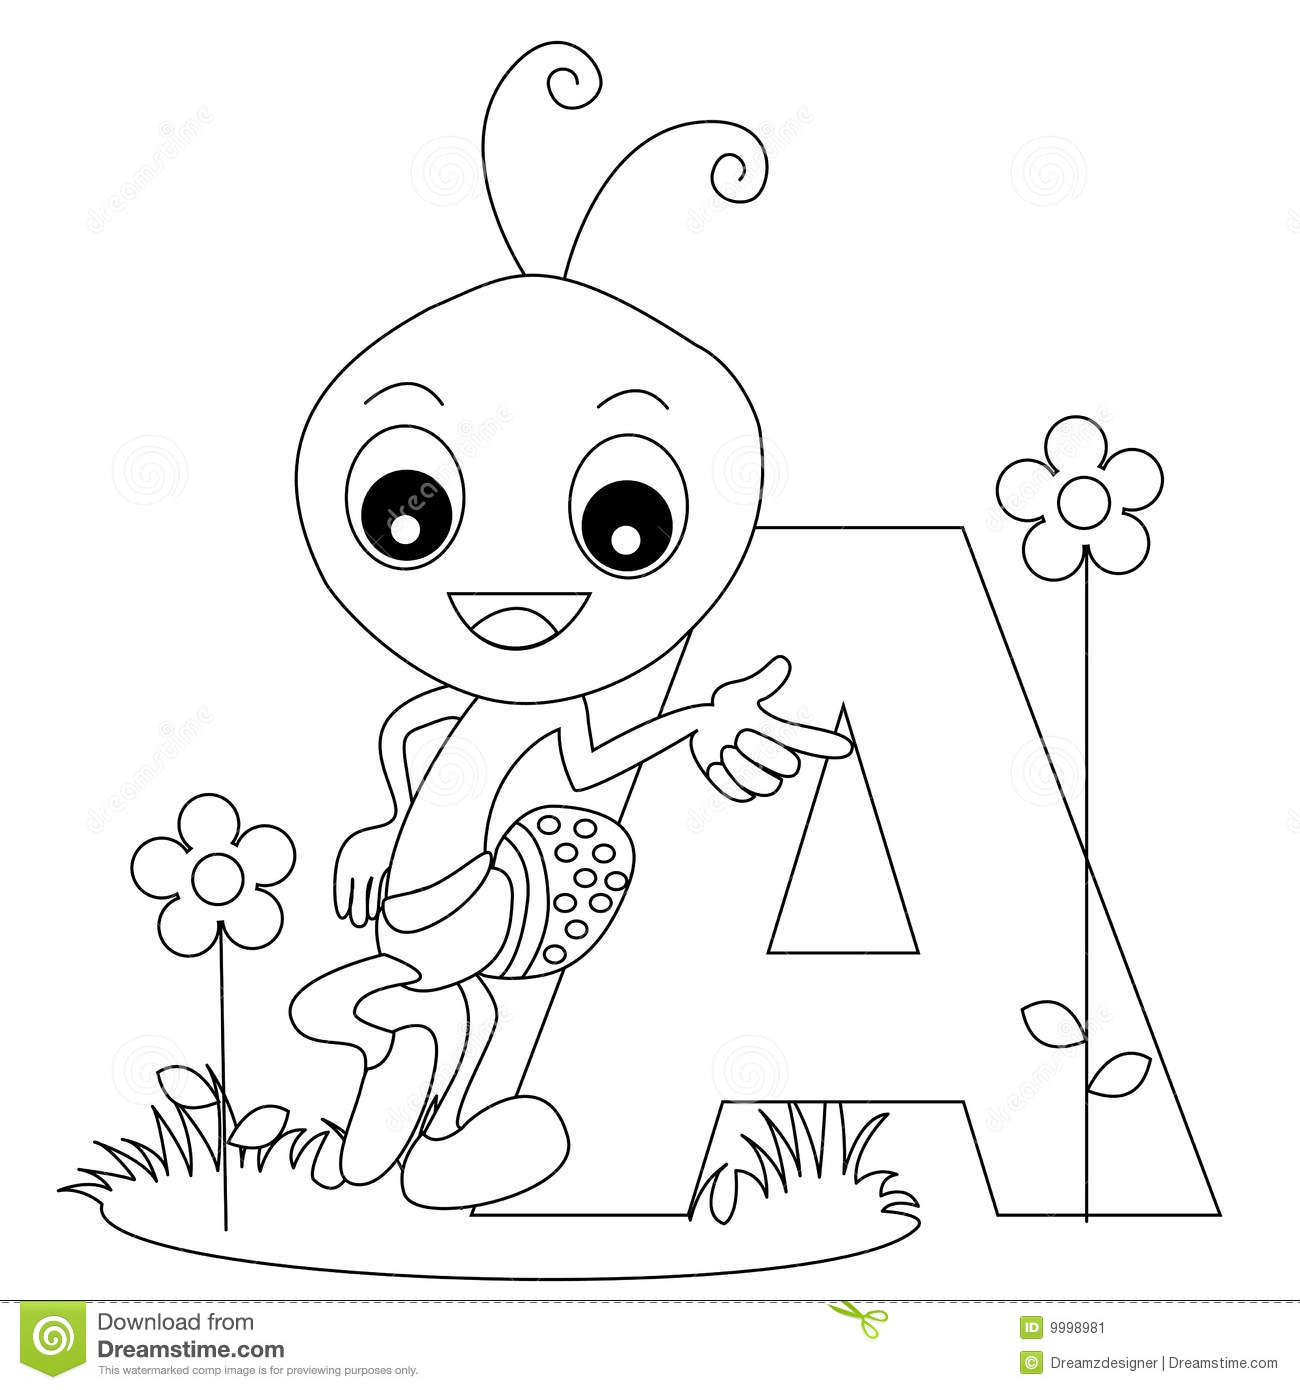 Alphabet w coloring pages - Download